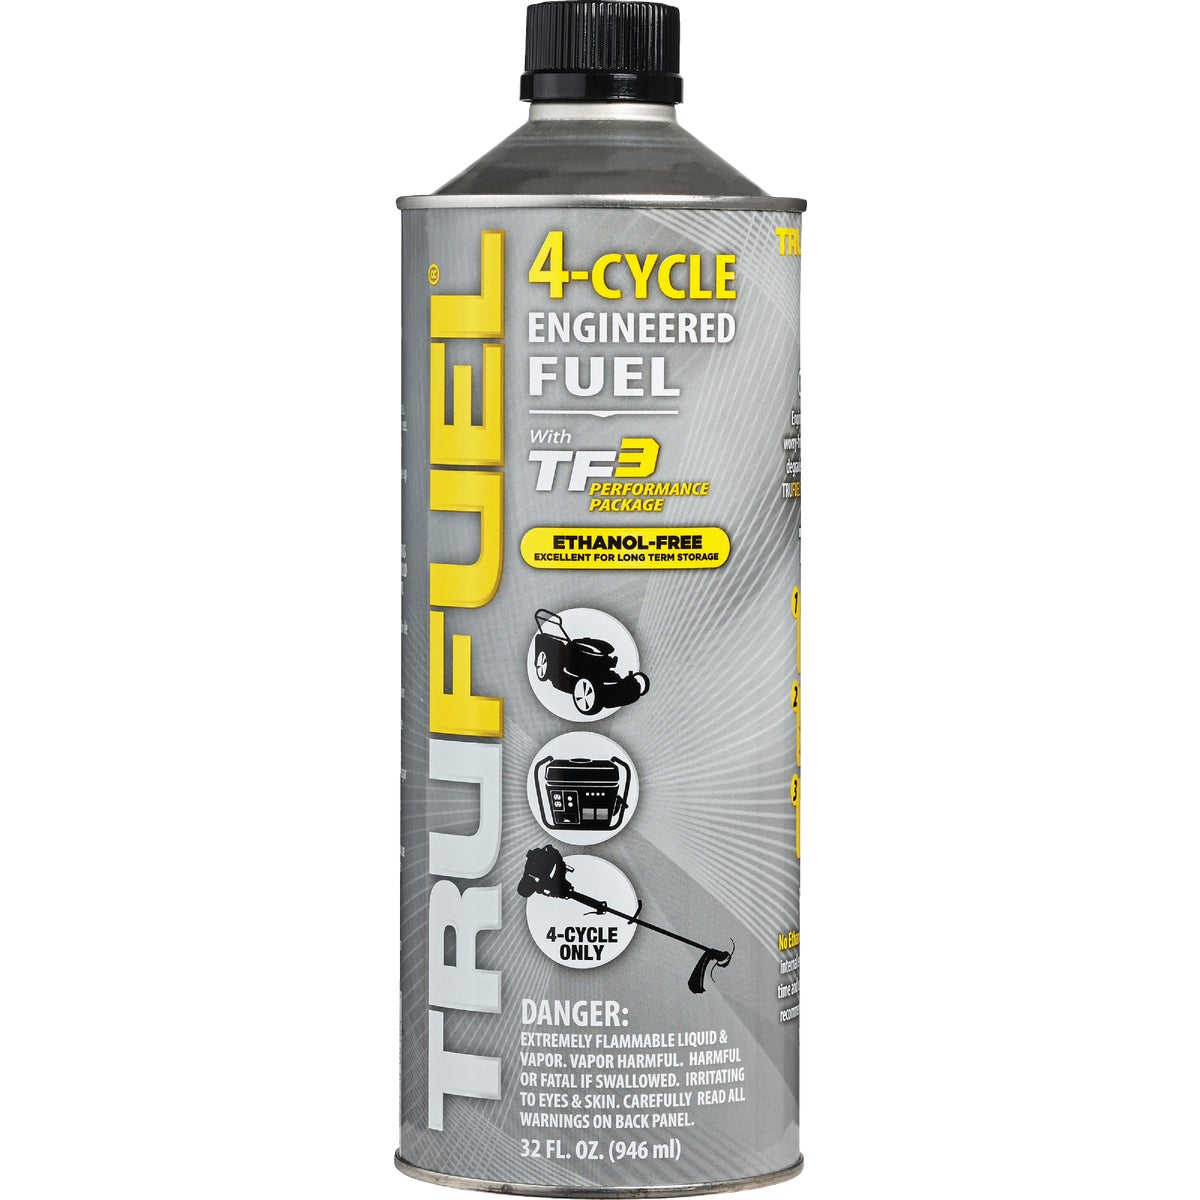 32OZ 4-CYCLE FUEL